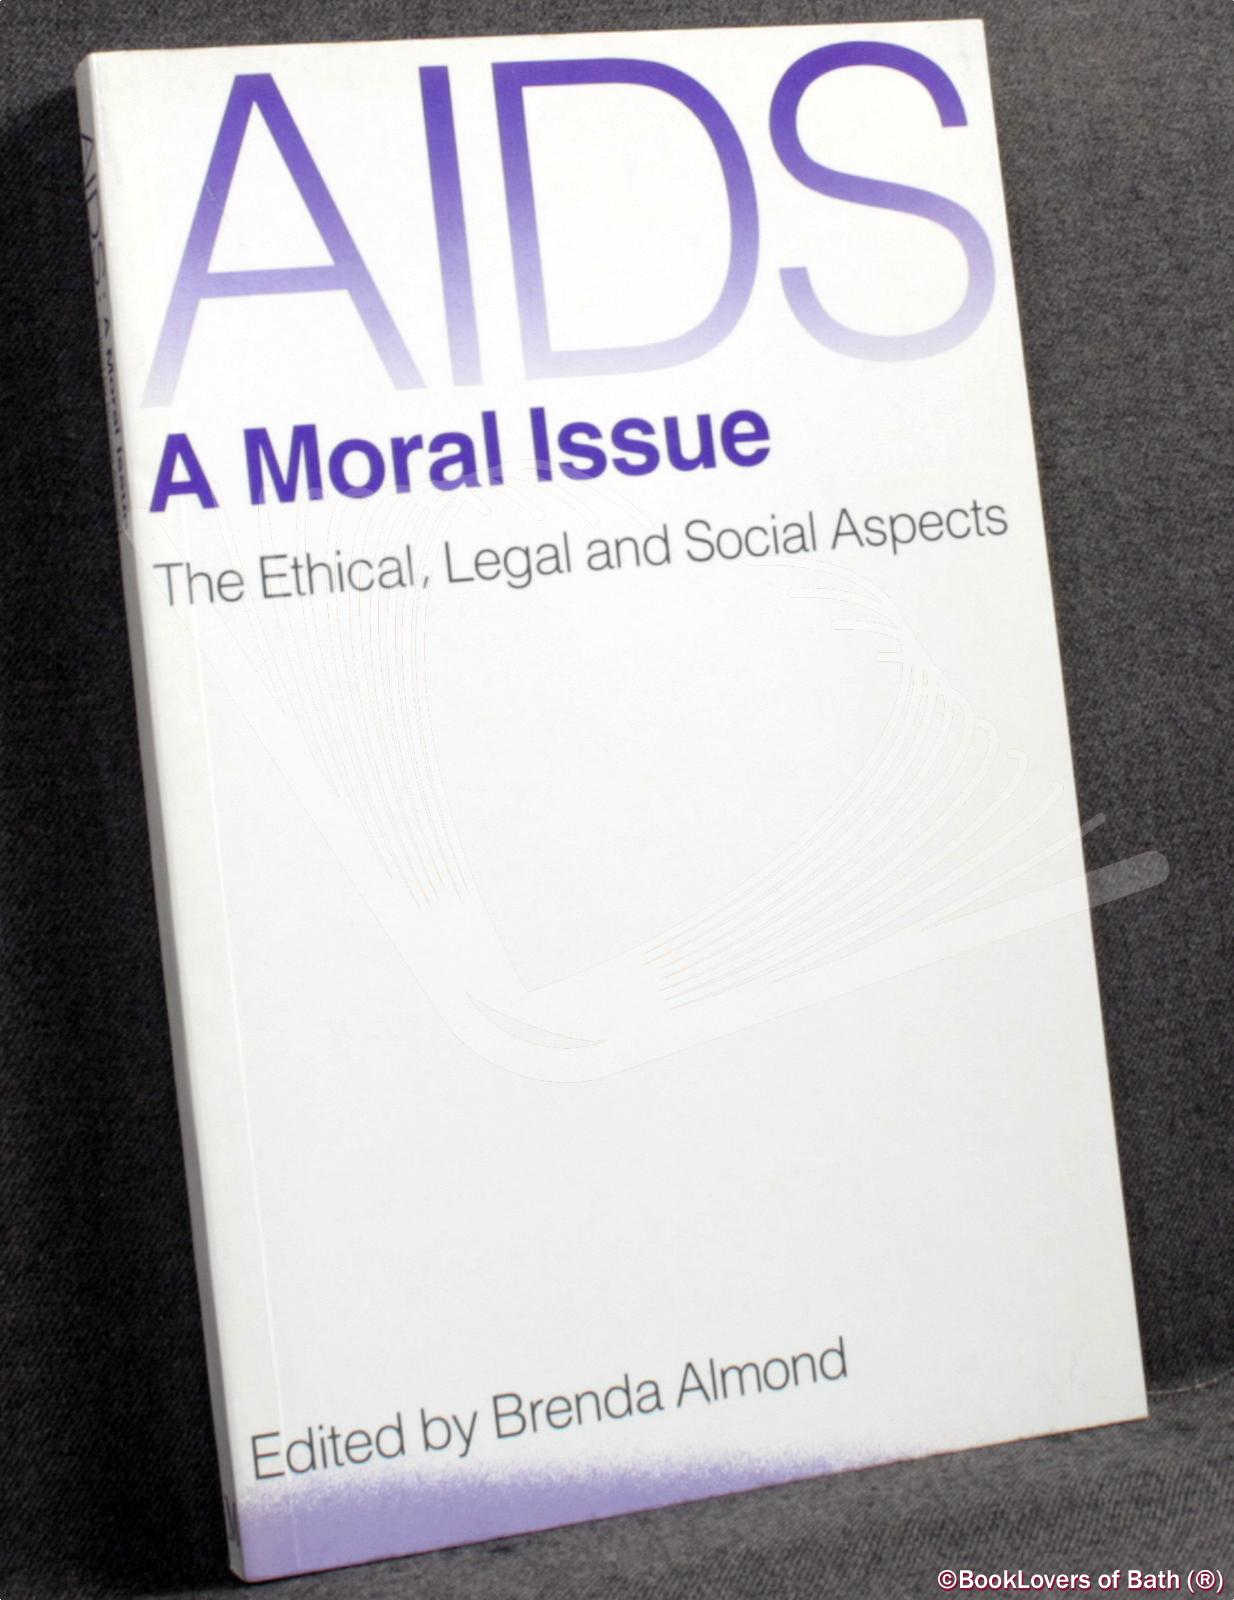 Aids - a Moral Issue: The Ethical, Legal and Social Aspects - Edited by Brenda Almond